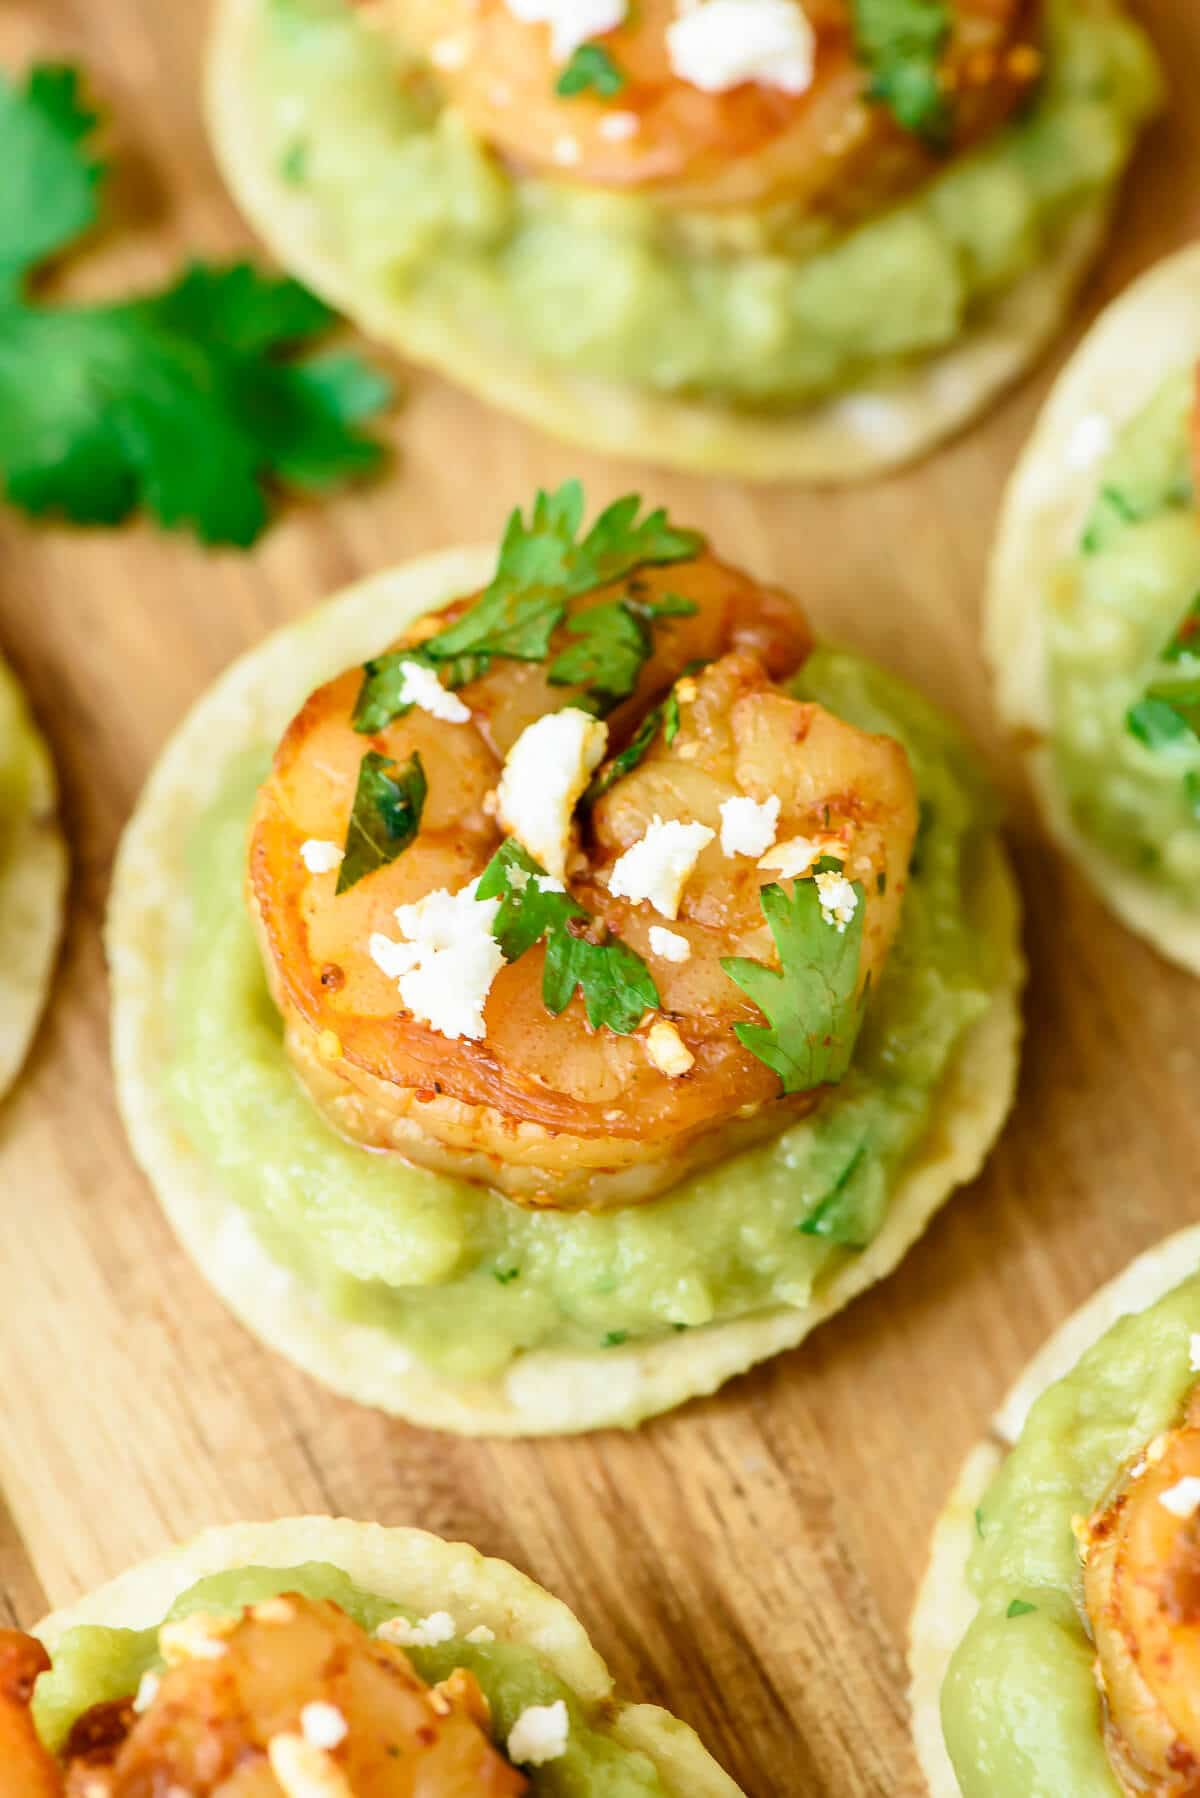 Spicy Shrimp Guacamole Bites - Juicy shrimp and spicy guacamole on top of a crunchy toritlla chip. So EASY and everyone loves this appetizer recipe!